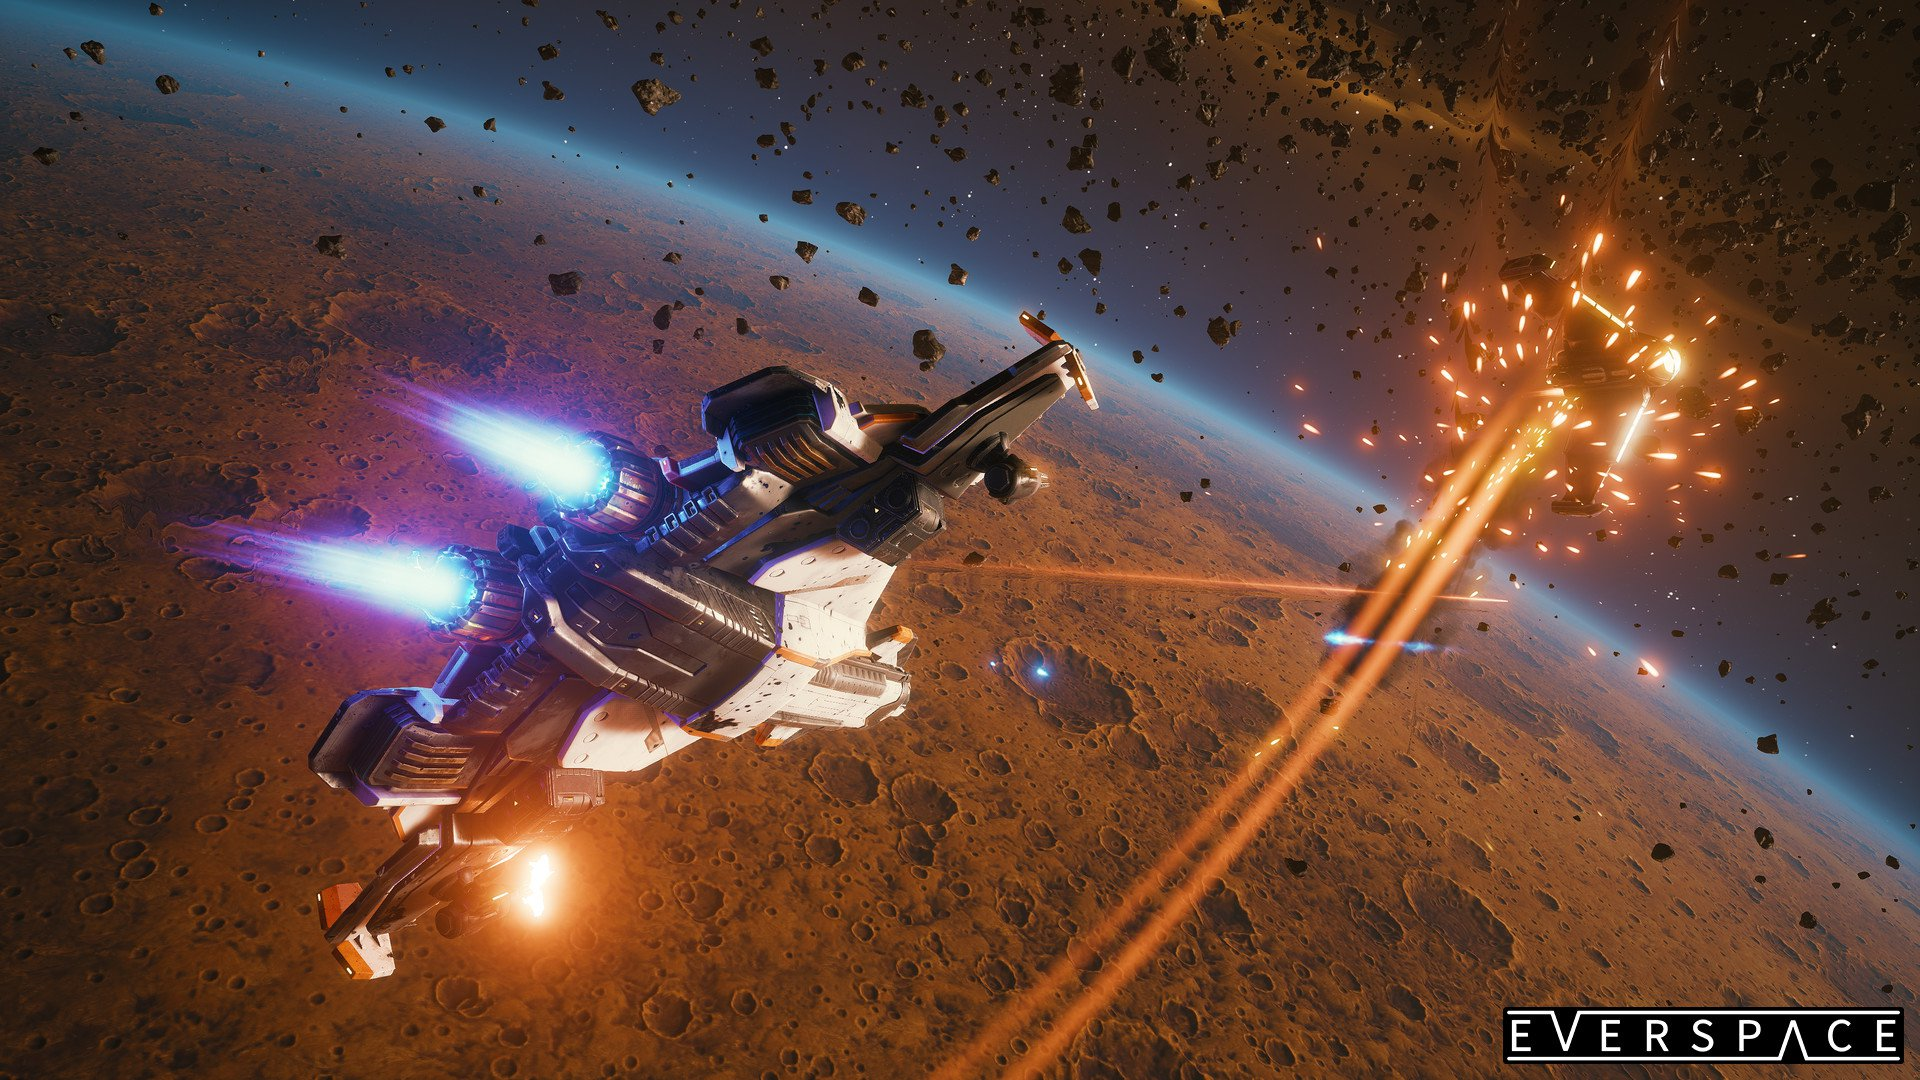 Everspace 19